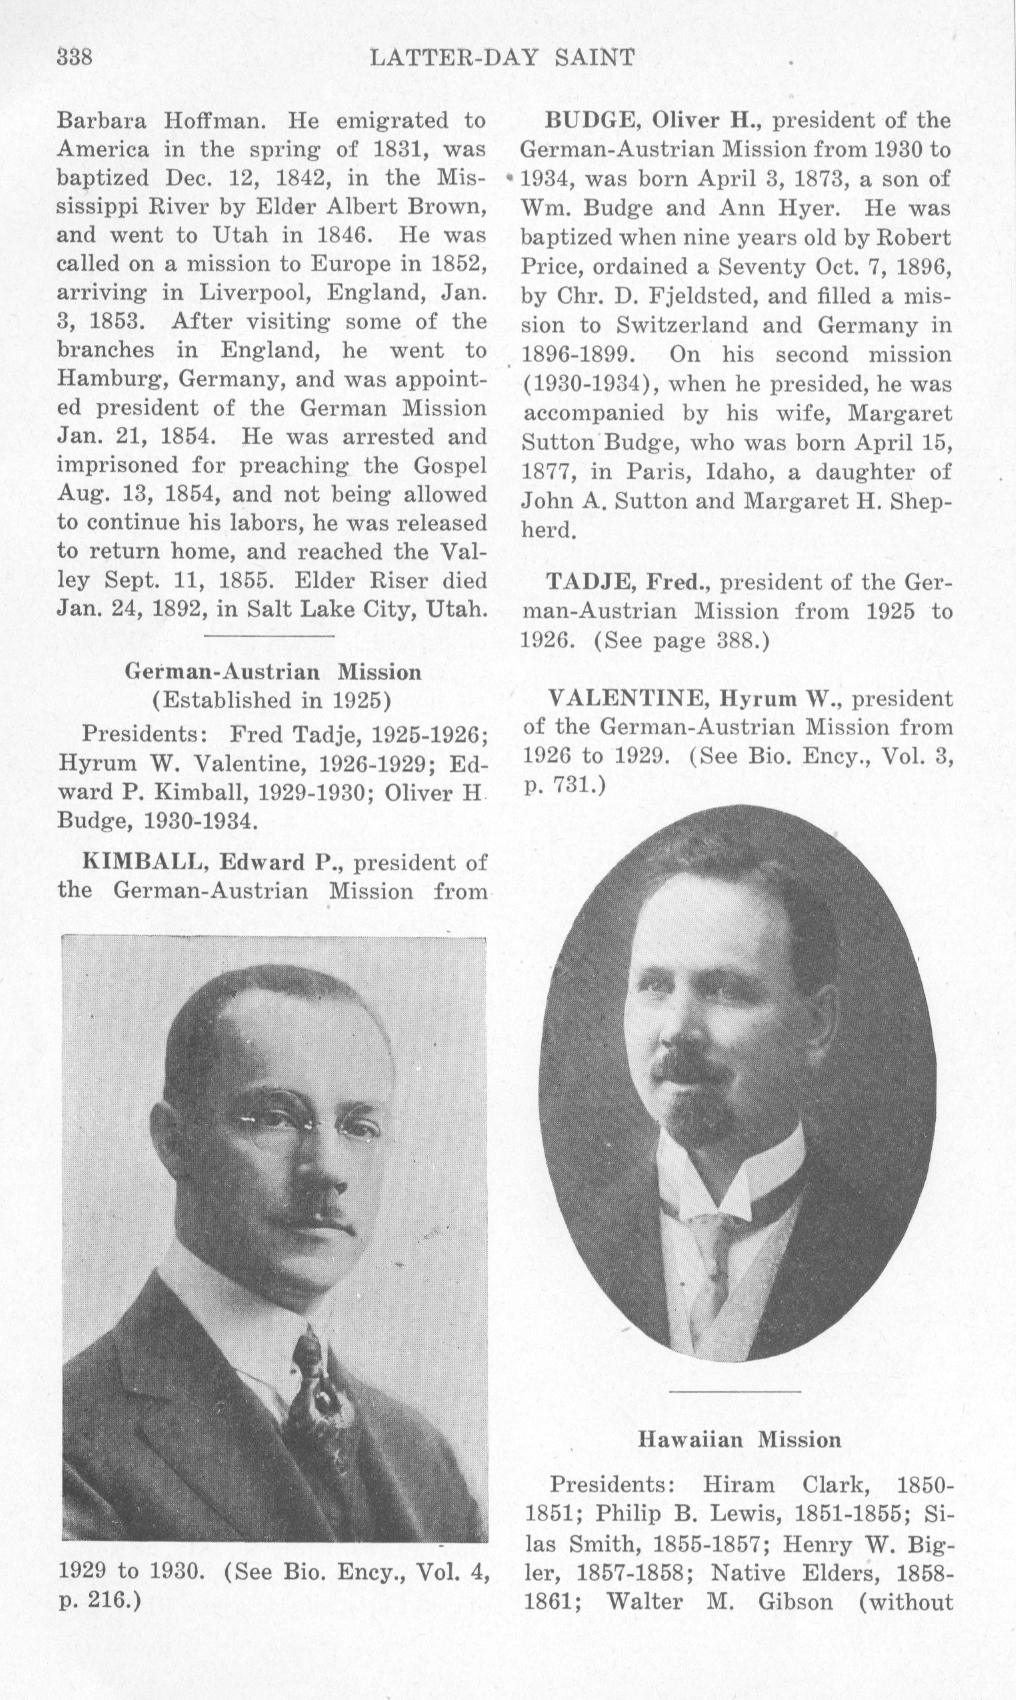 page 338 - BYUI - Books - Digital Collections